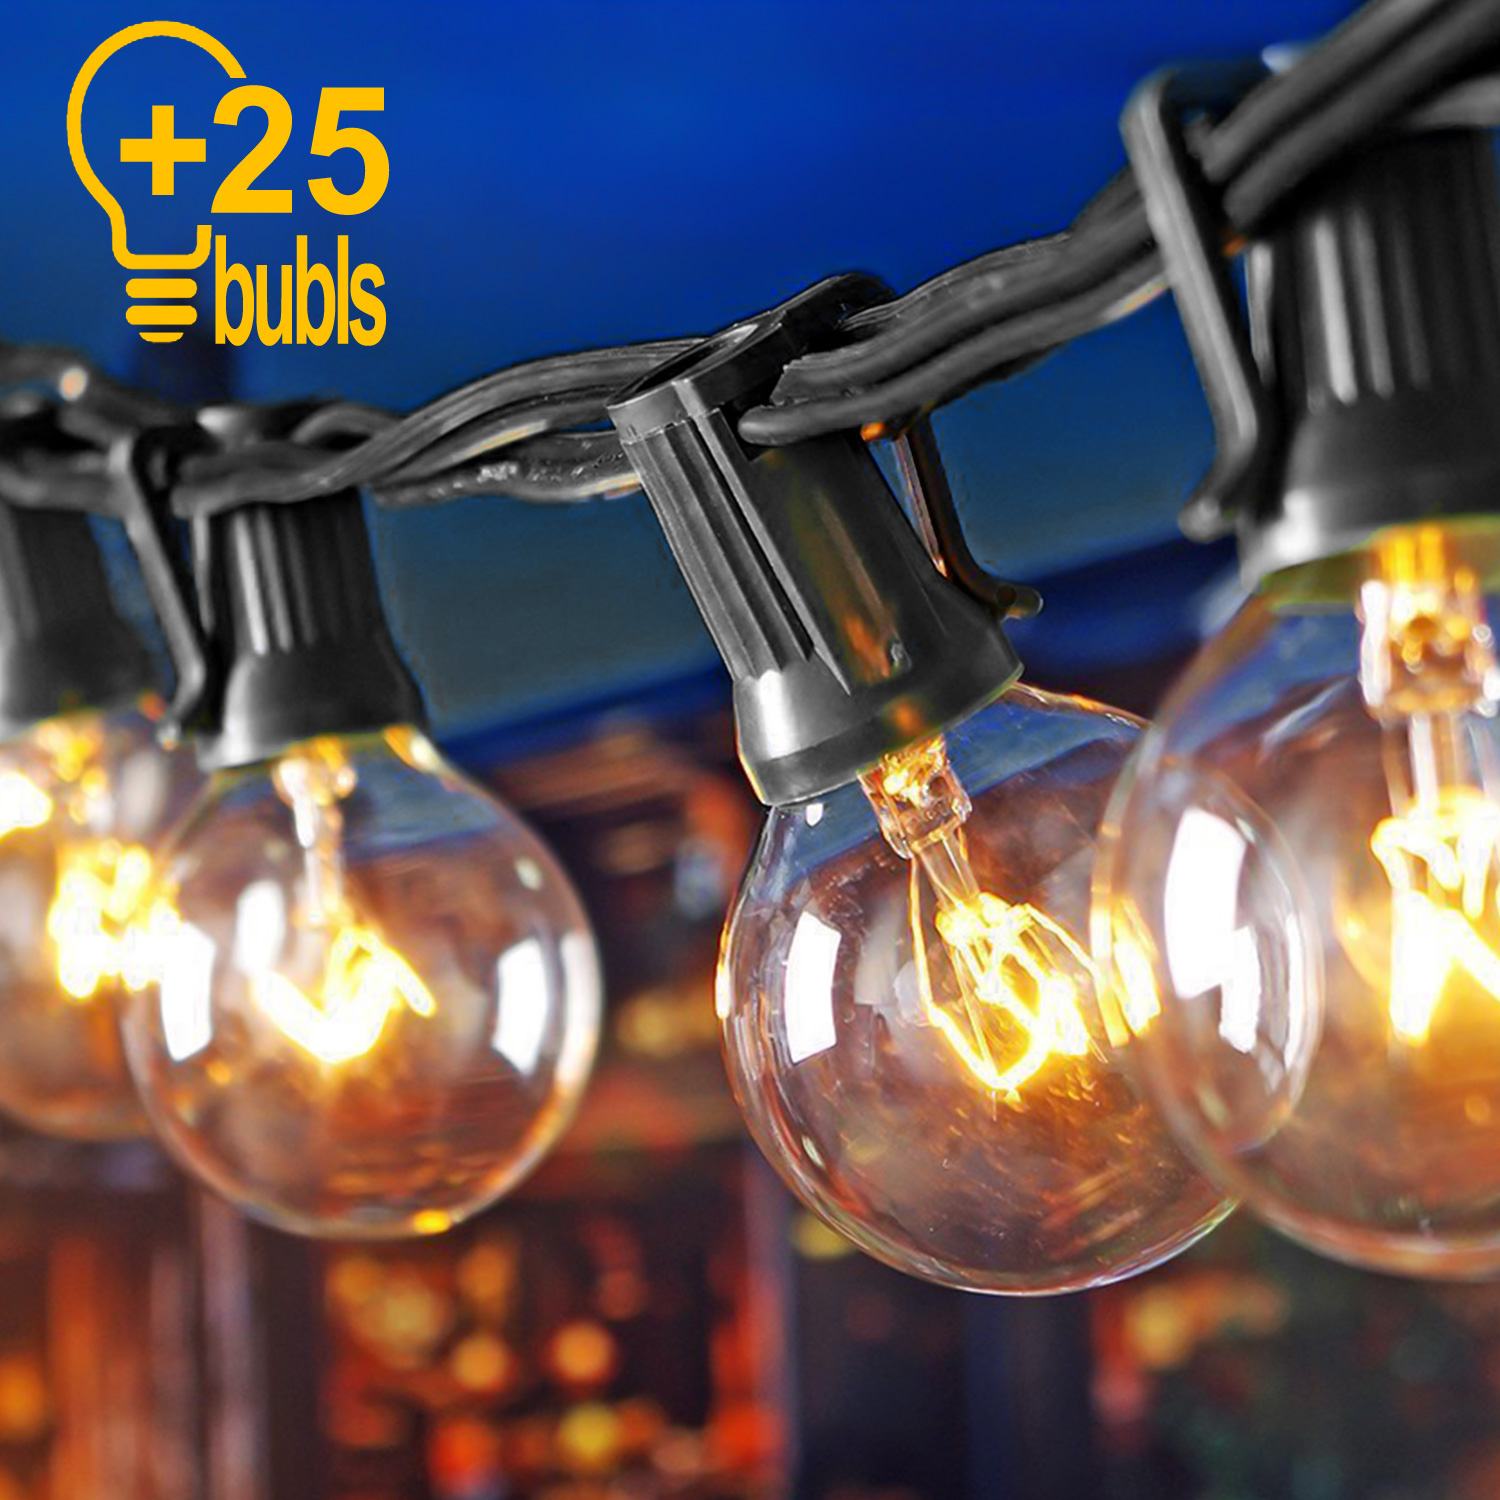 Waterproof Led Ball Bulb String Lights Warm White Outdoor Lighting Ac110 230v Fairy Lamp Garden Home Party Christmas Decoration Lighting Strings Aliexpress